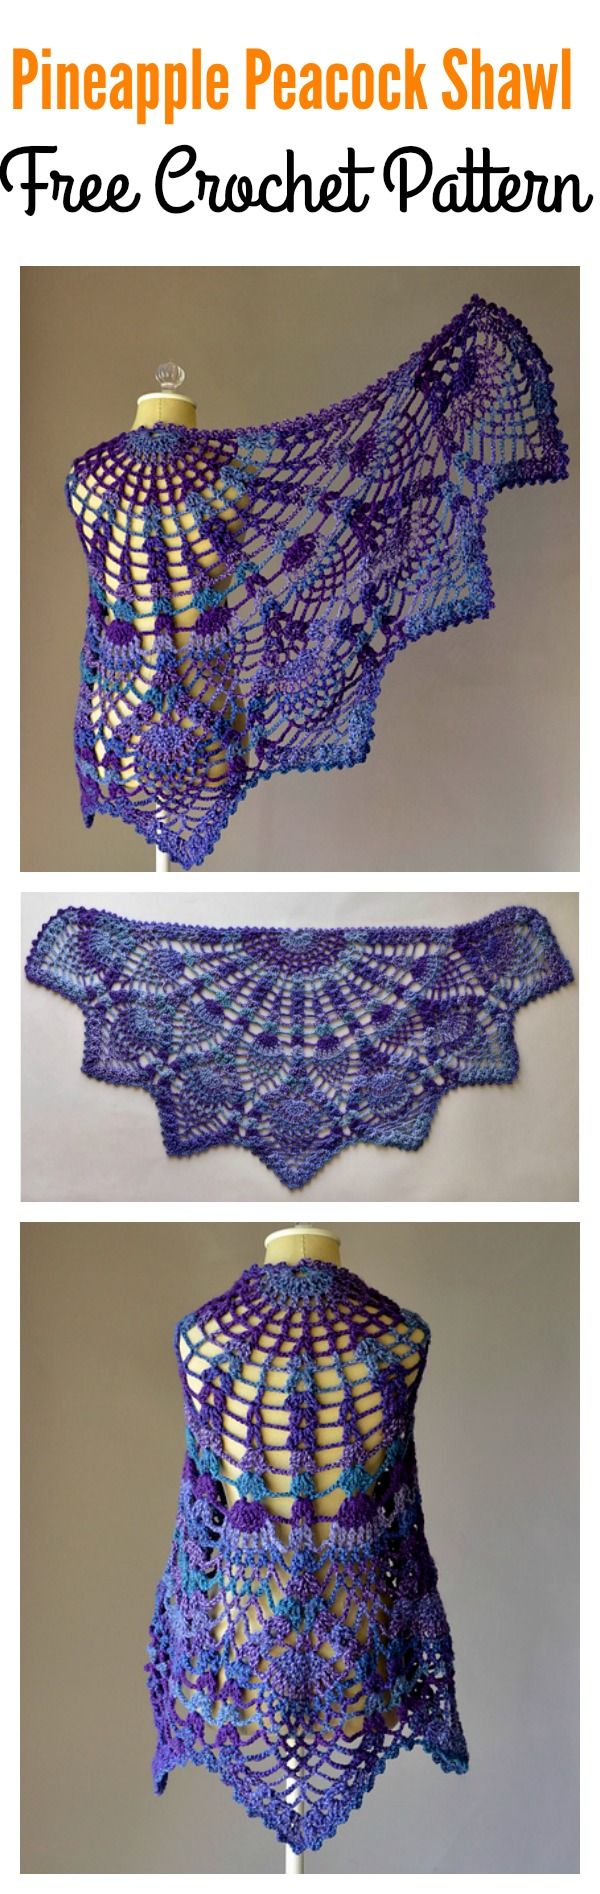 Pineapple Peacock Shawl Free Crochet Pattern